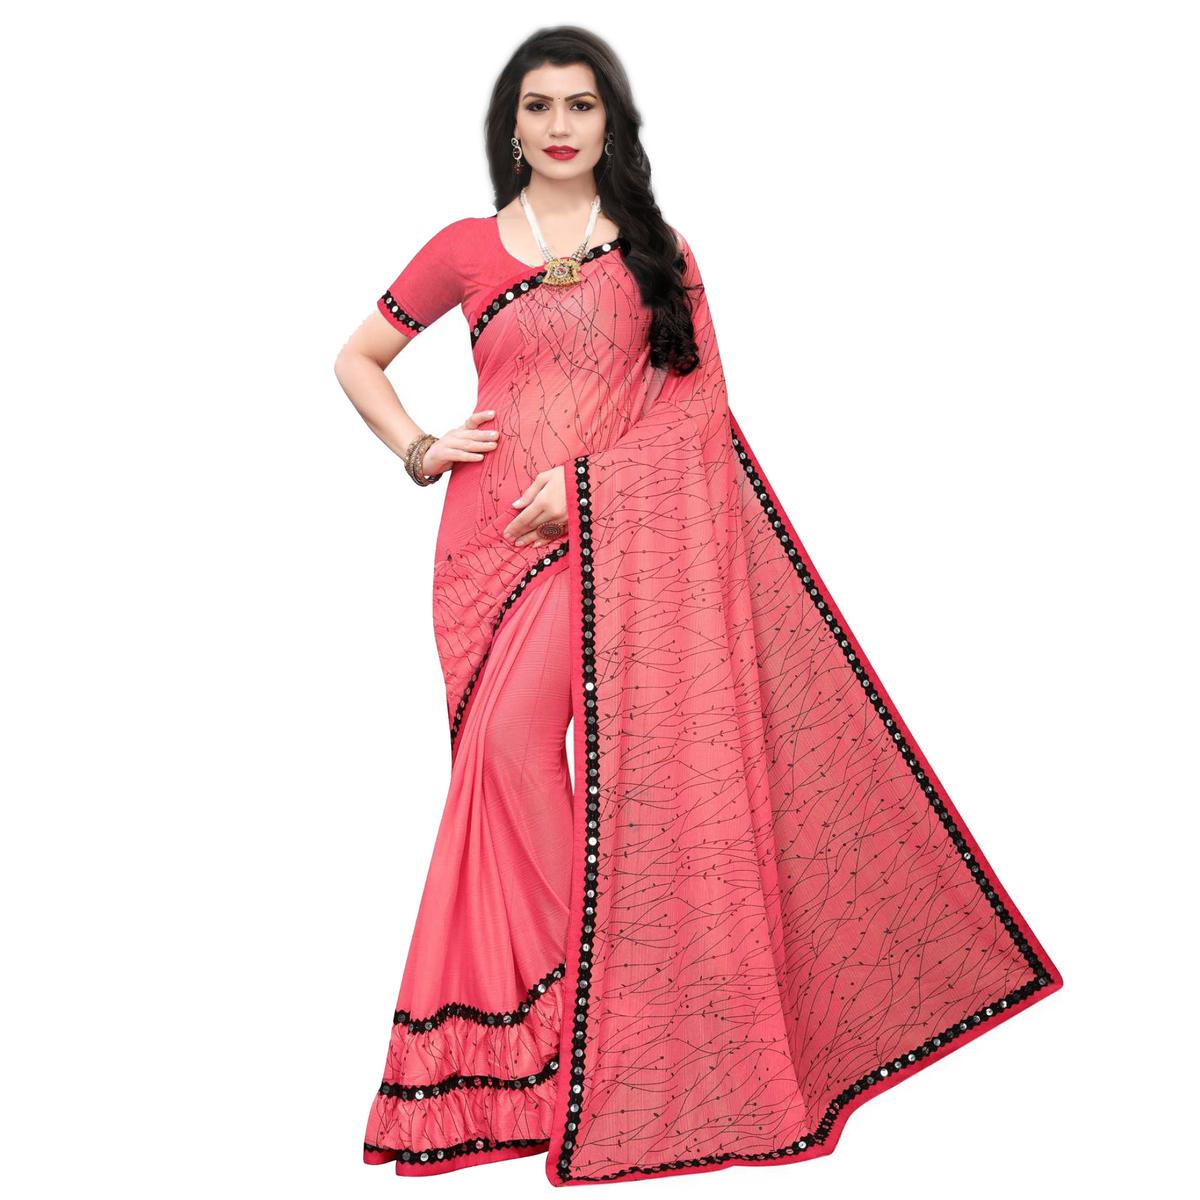 Alluring Gajri Colored Party Wear Printed Lycra Blend Saree